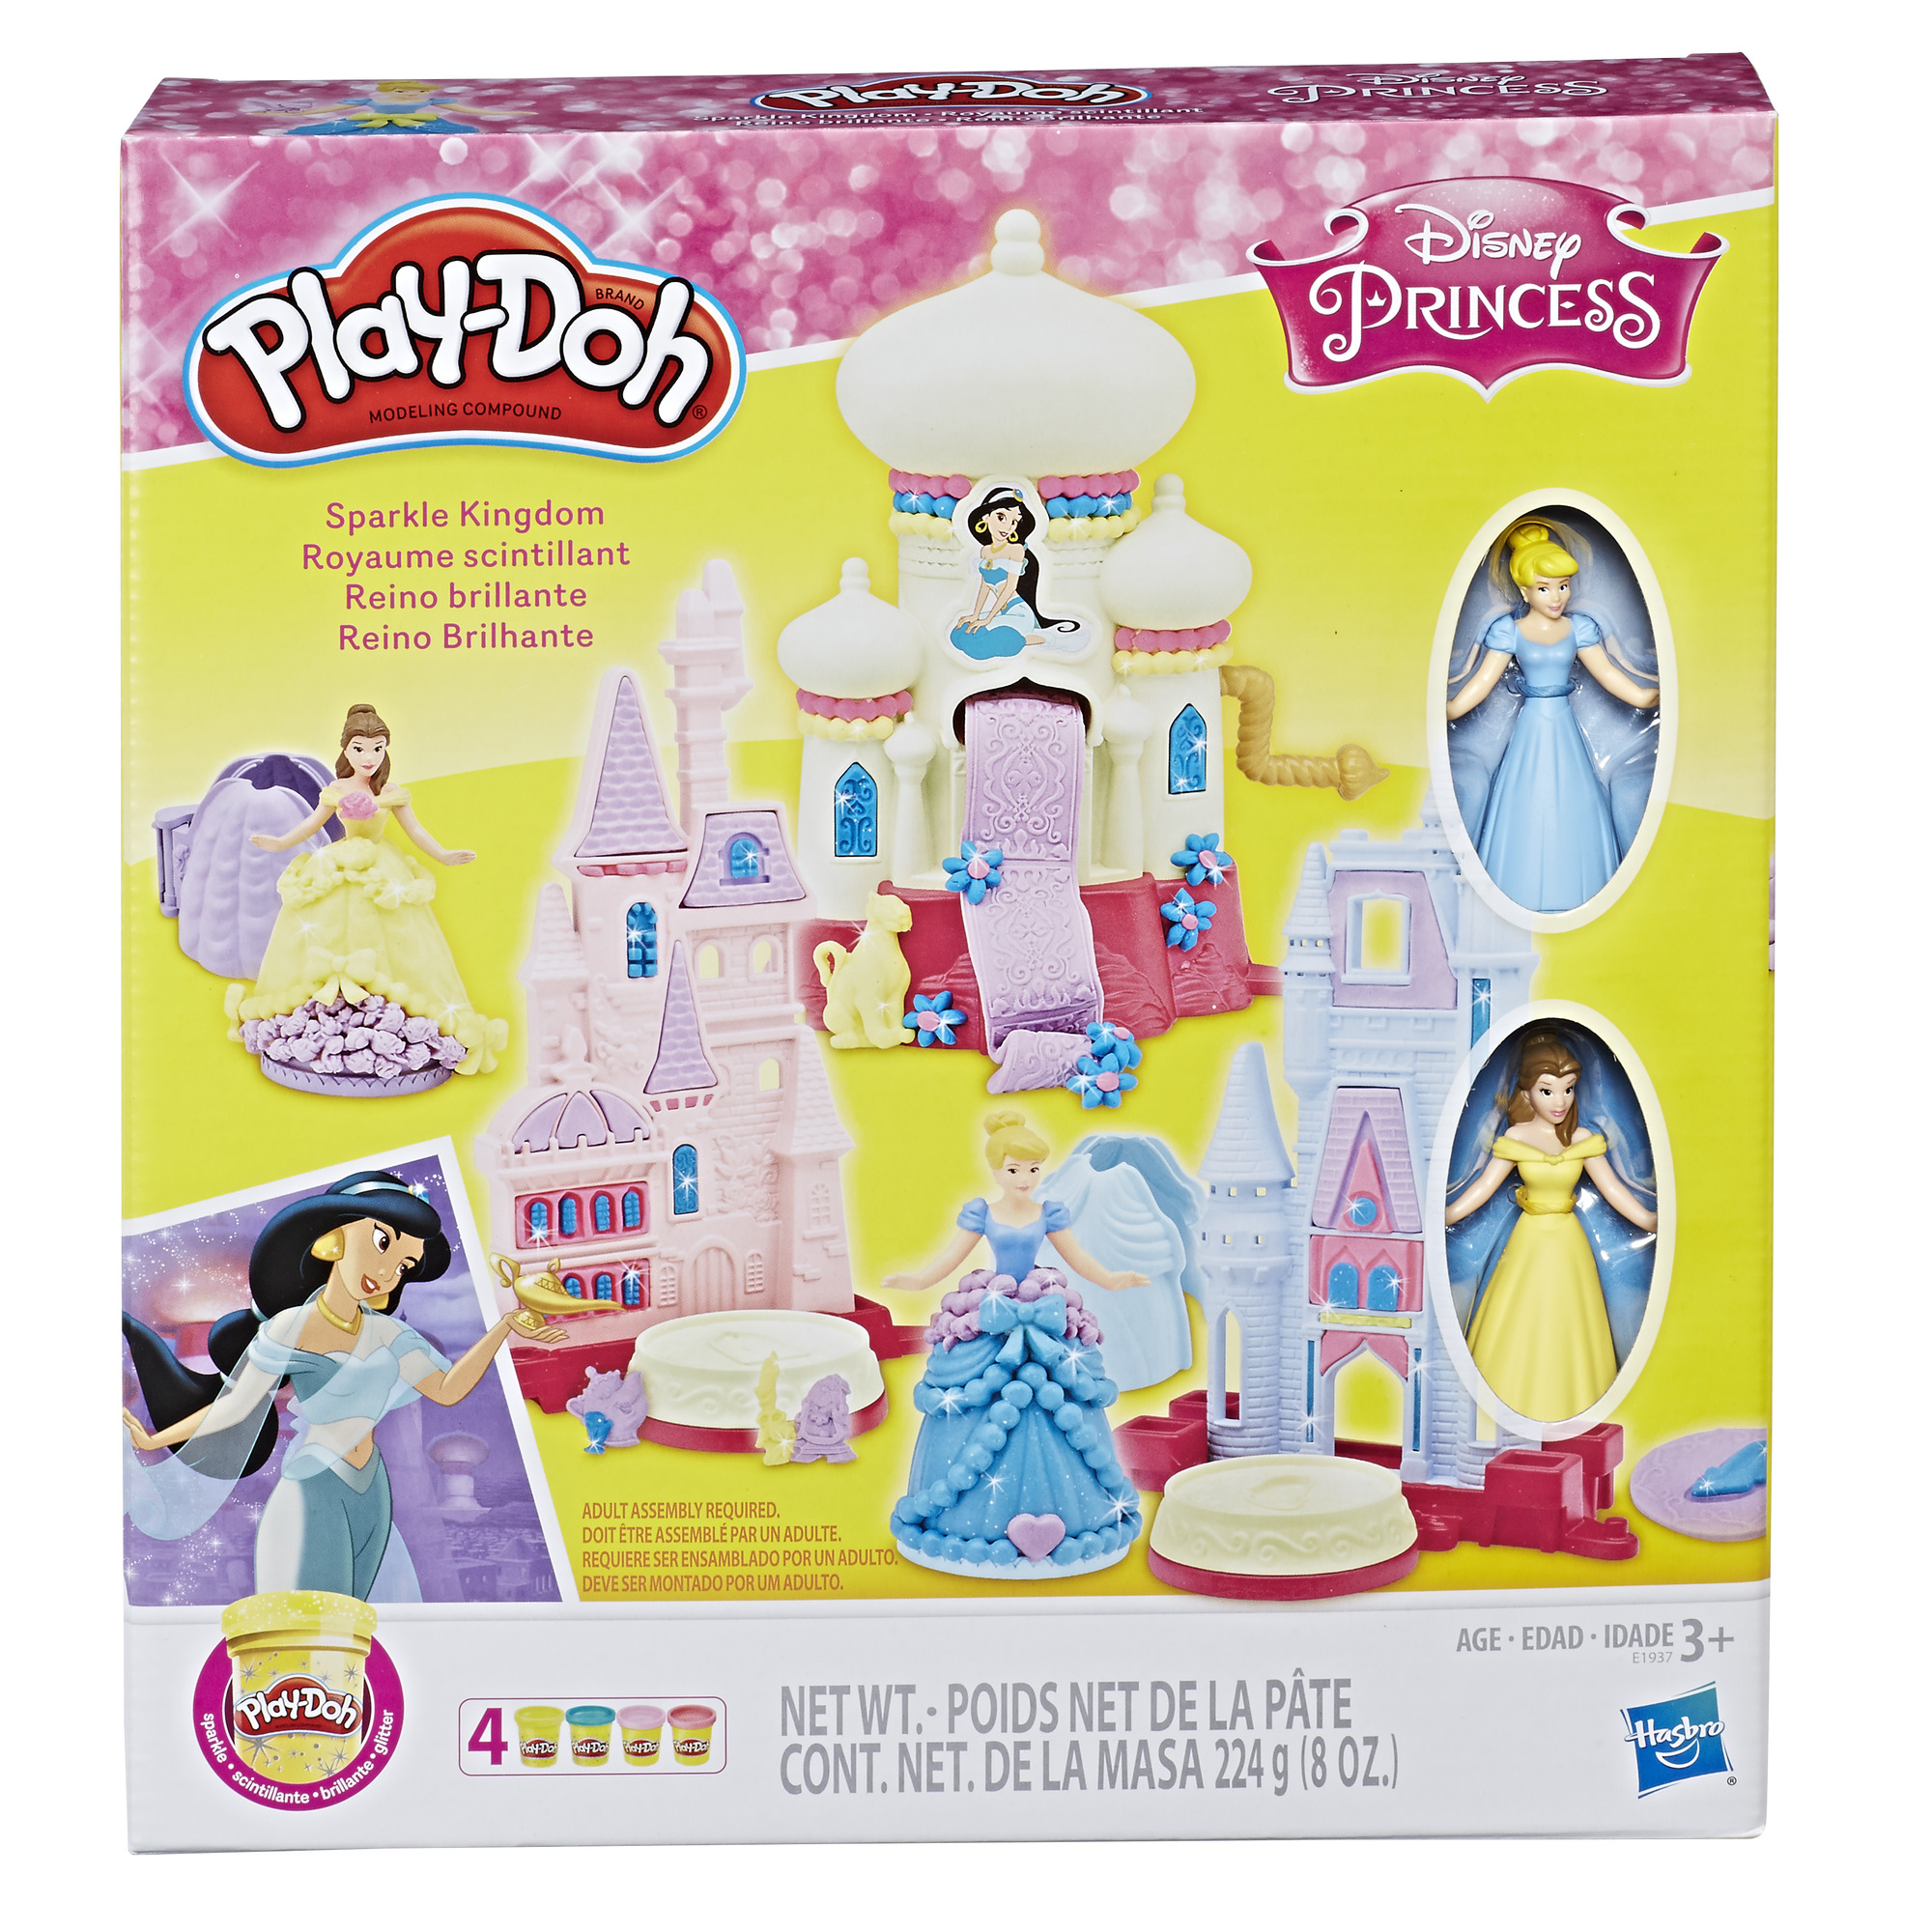 Play-Doh Disney Princess 3-in-1 Sparkle Kingdom Toy Castle Set, Ages 3 and up